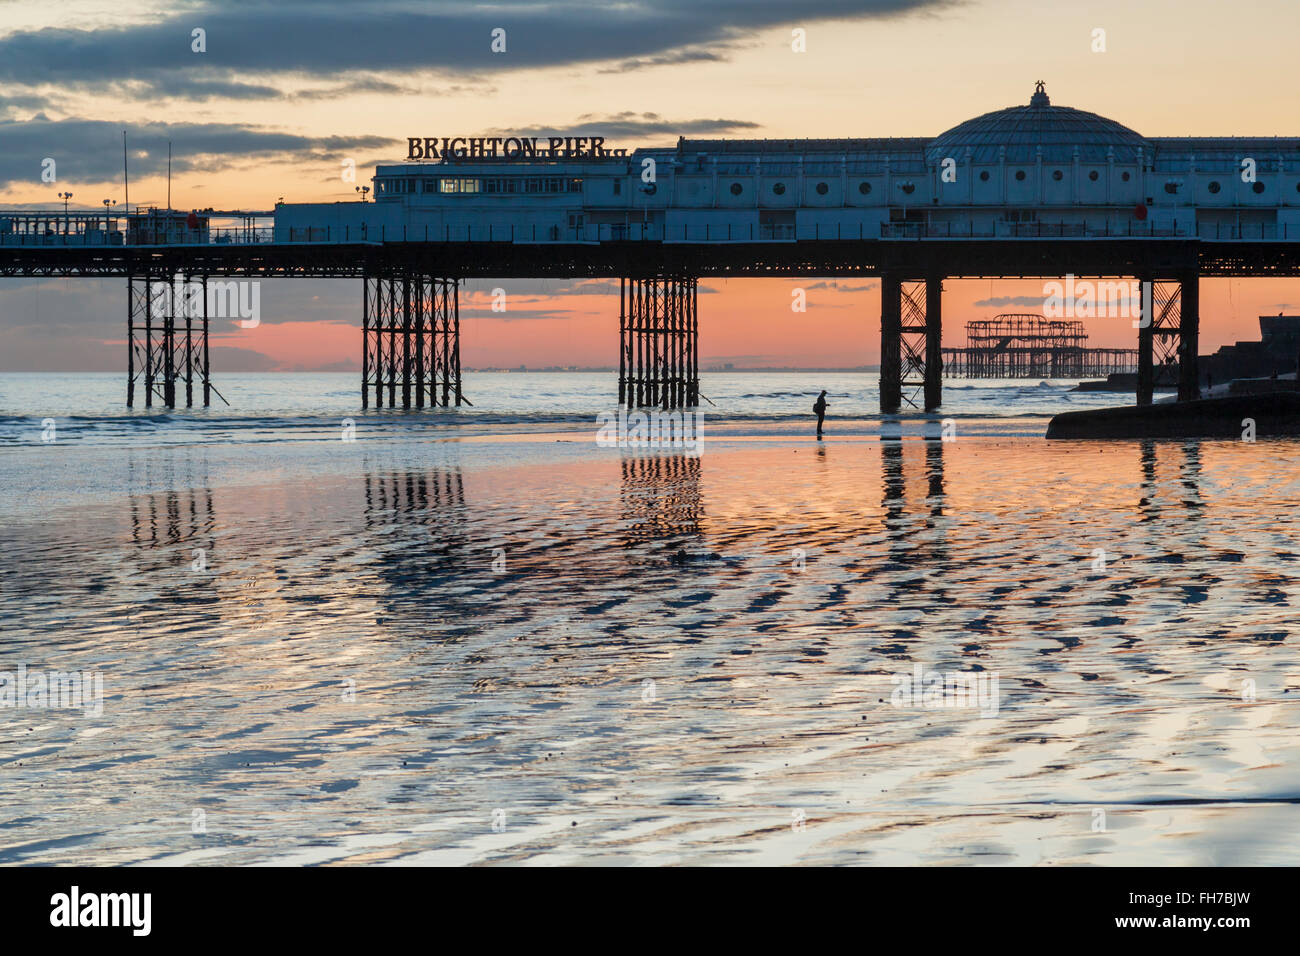 Evening on Brighton beach at low tide, East Sussex, England. Stock Photo